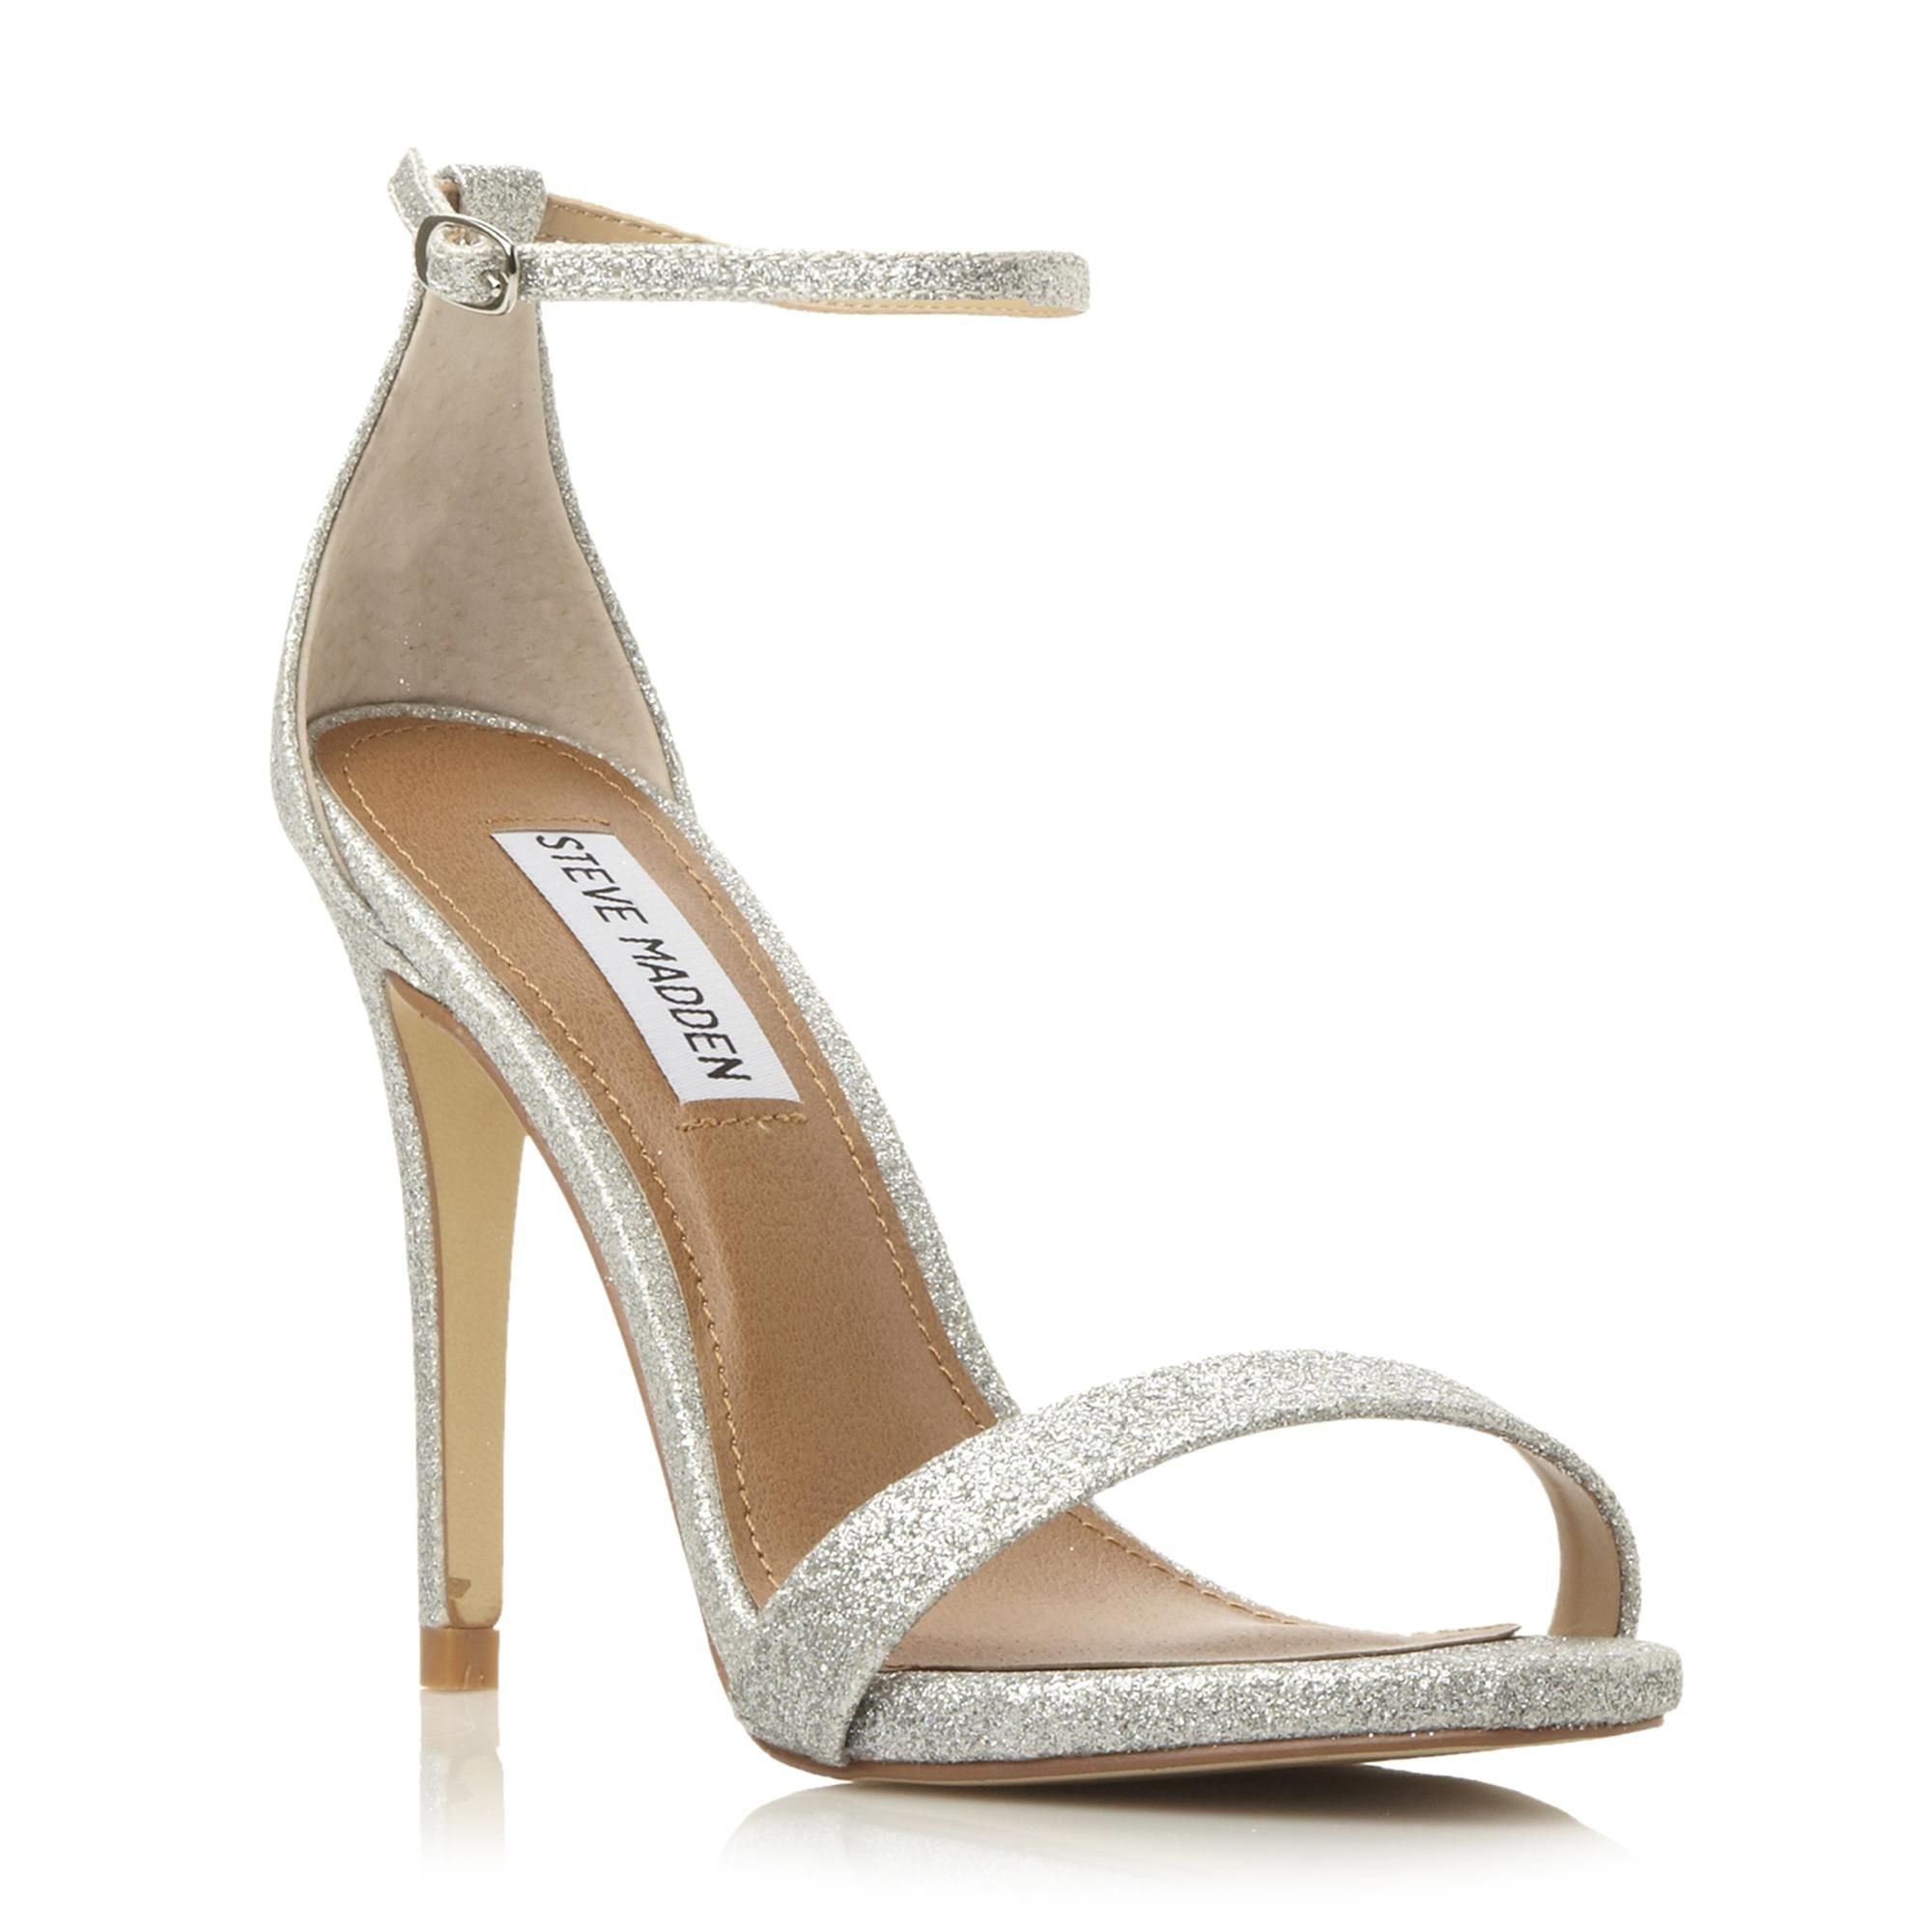 71b374440f6 STEVE MADDEN STECY SM - Two Part Ankle Strap Heel Sandal - silver ...